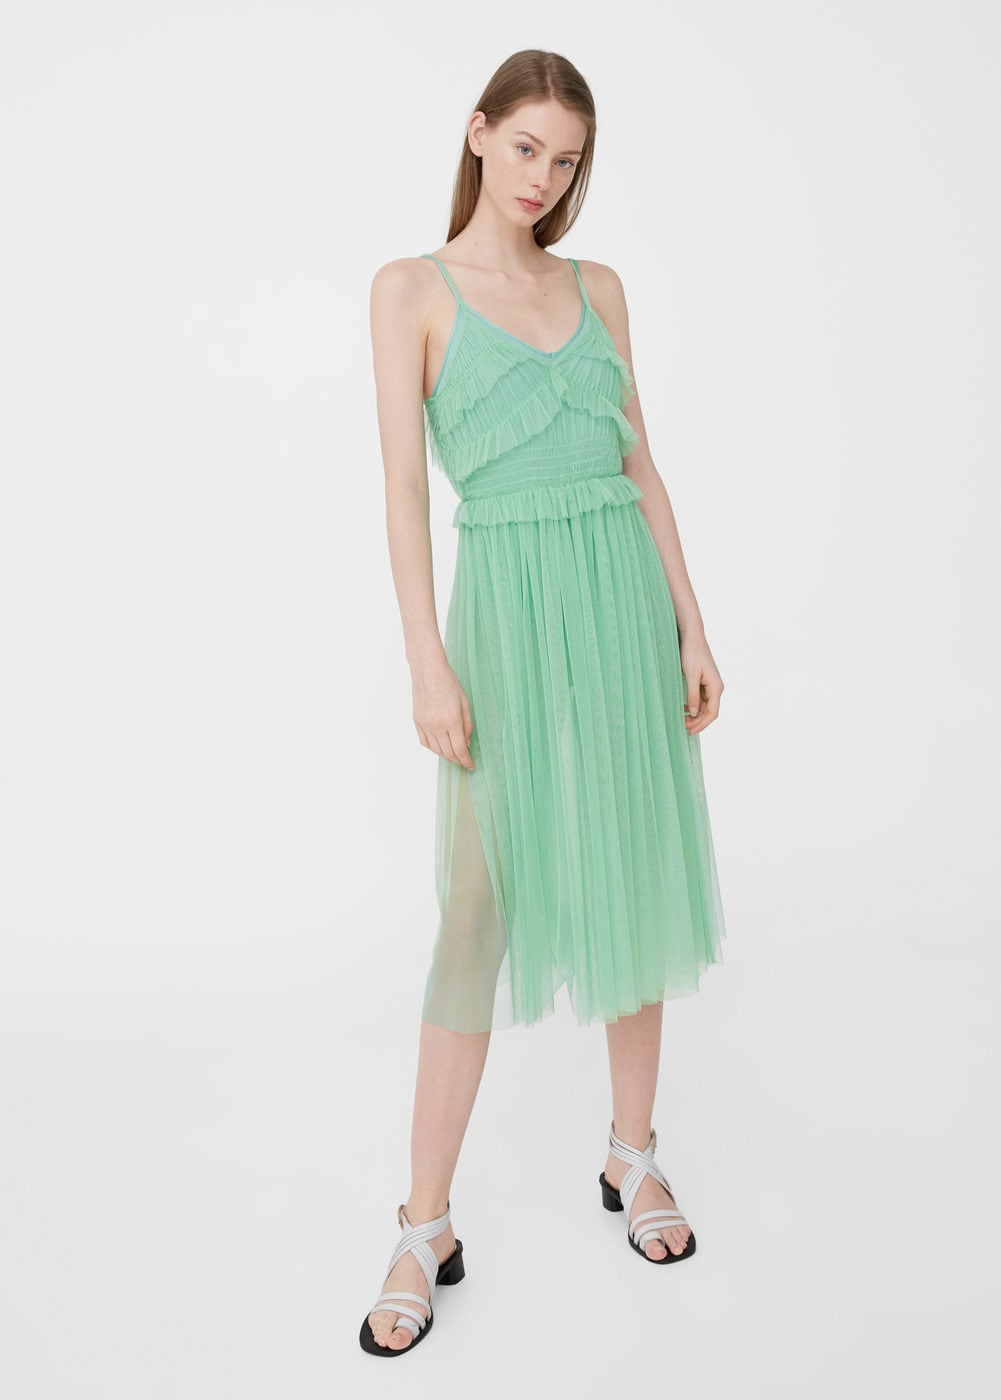 Tulle Dress  from Mango - $59.99